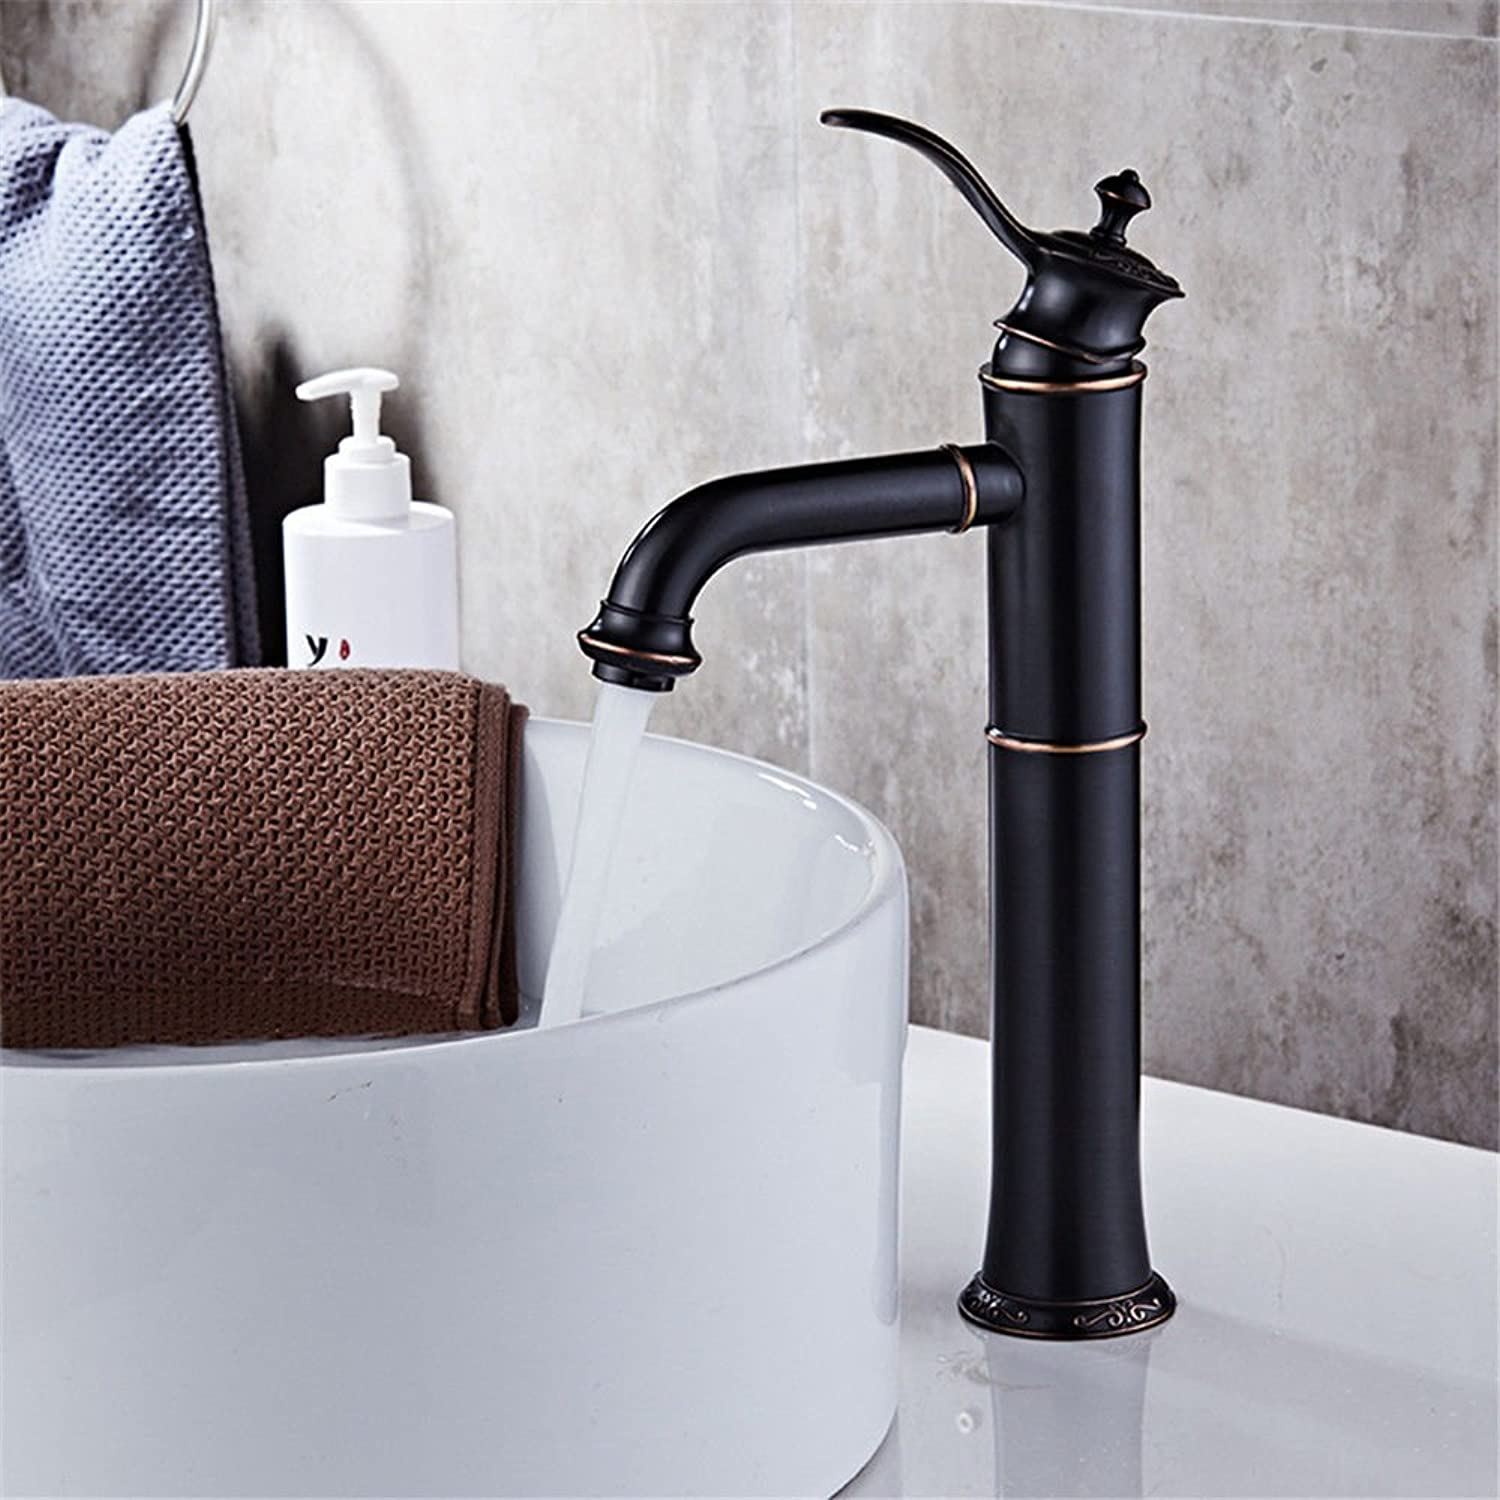 Modern simple copper hot and cold kitchen sink taps kitchen faucet Head-mounted washbasin faucet antique hotel basin faucet copper faucet Suitable for all bathroom kitchen sinks